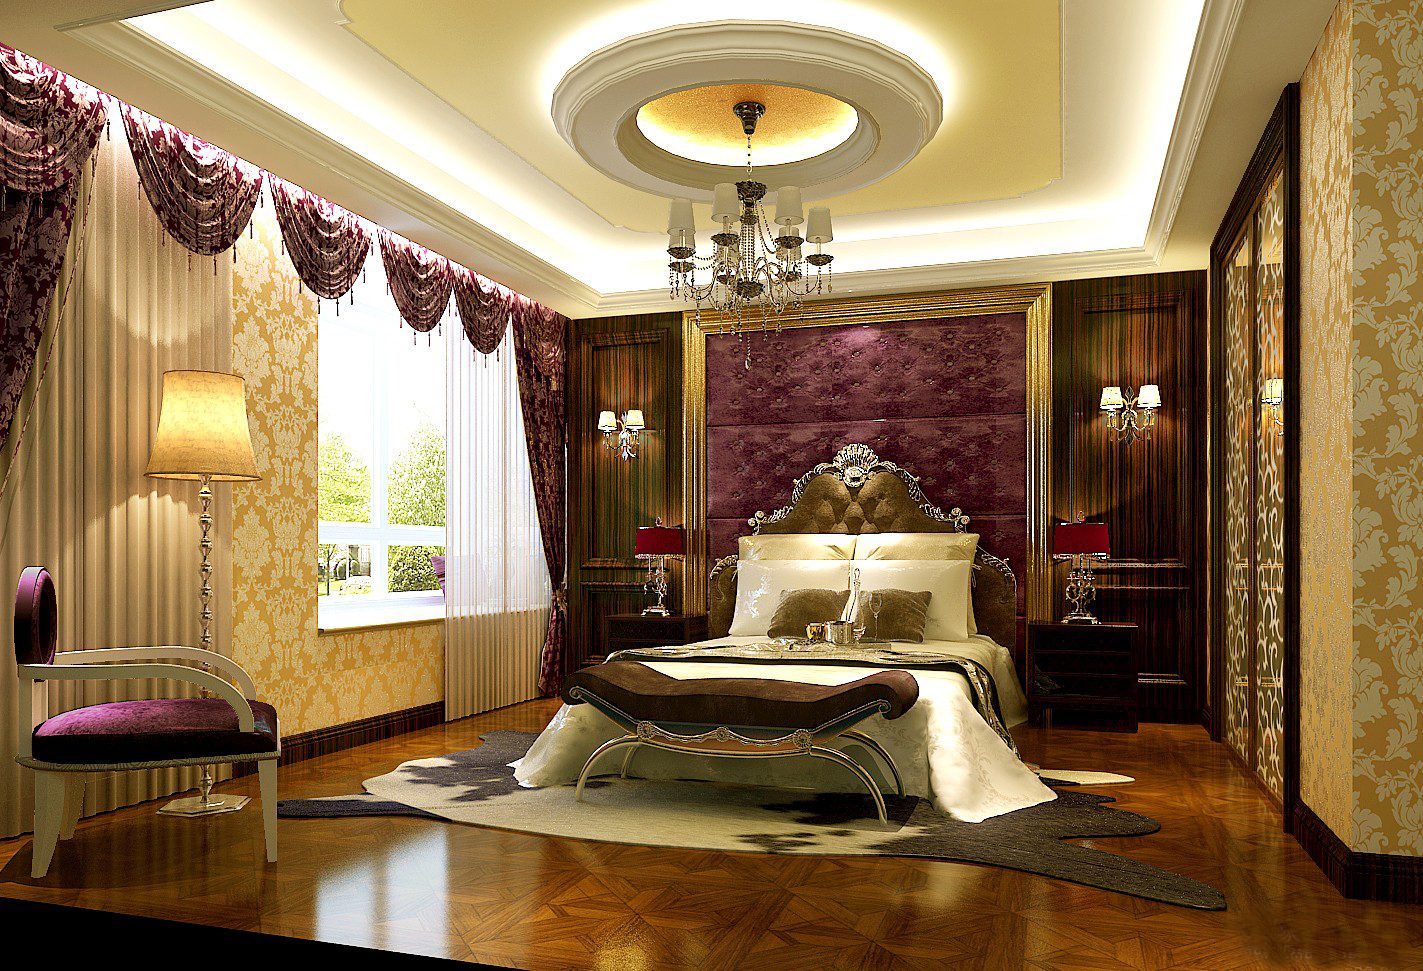 ROYAL POP FALSE CEILING DESIGN FOR BEDROOM. 25 Latest False Designs For Living Room   Bed Room